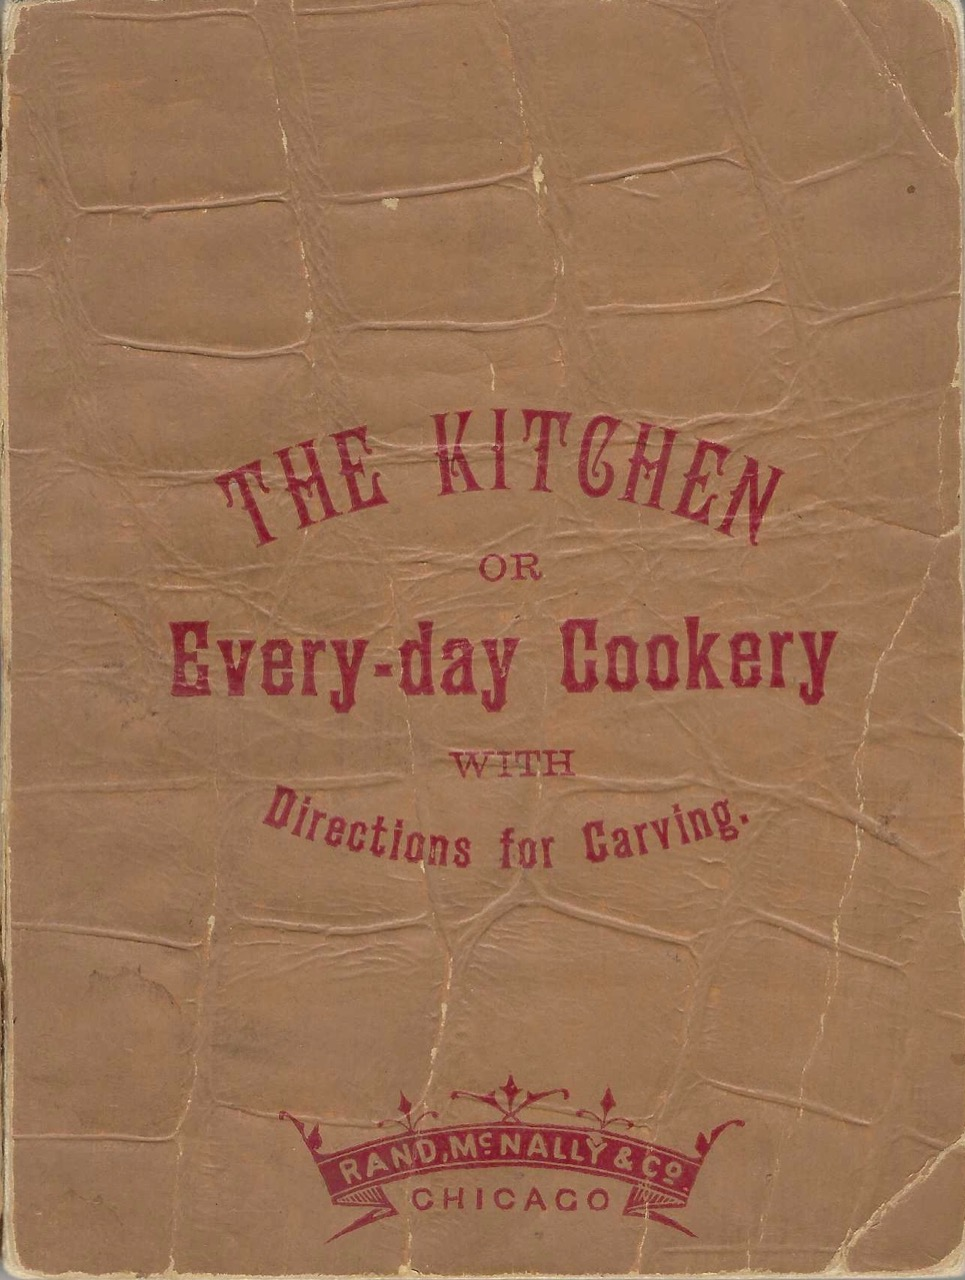 The Kitchen; or, Every-day Cookery, Containing Many Useful Practical Directions, Recipes, etc. with Numerous Wood Engravings Showing How to Carve, and the Proper Mode of Sending Dishes to Table. A Companion Volume to Rand, McNally & Co.'s Pocket Encyclopedia. [Everyday]. Harriet Stewart Judd, Rand McNally, Company.